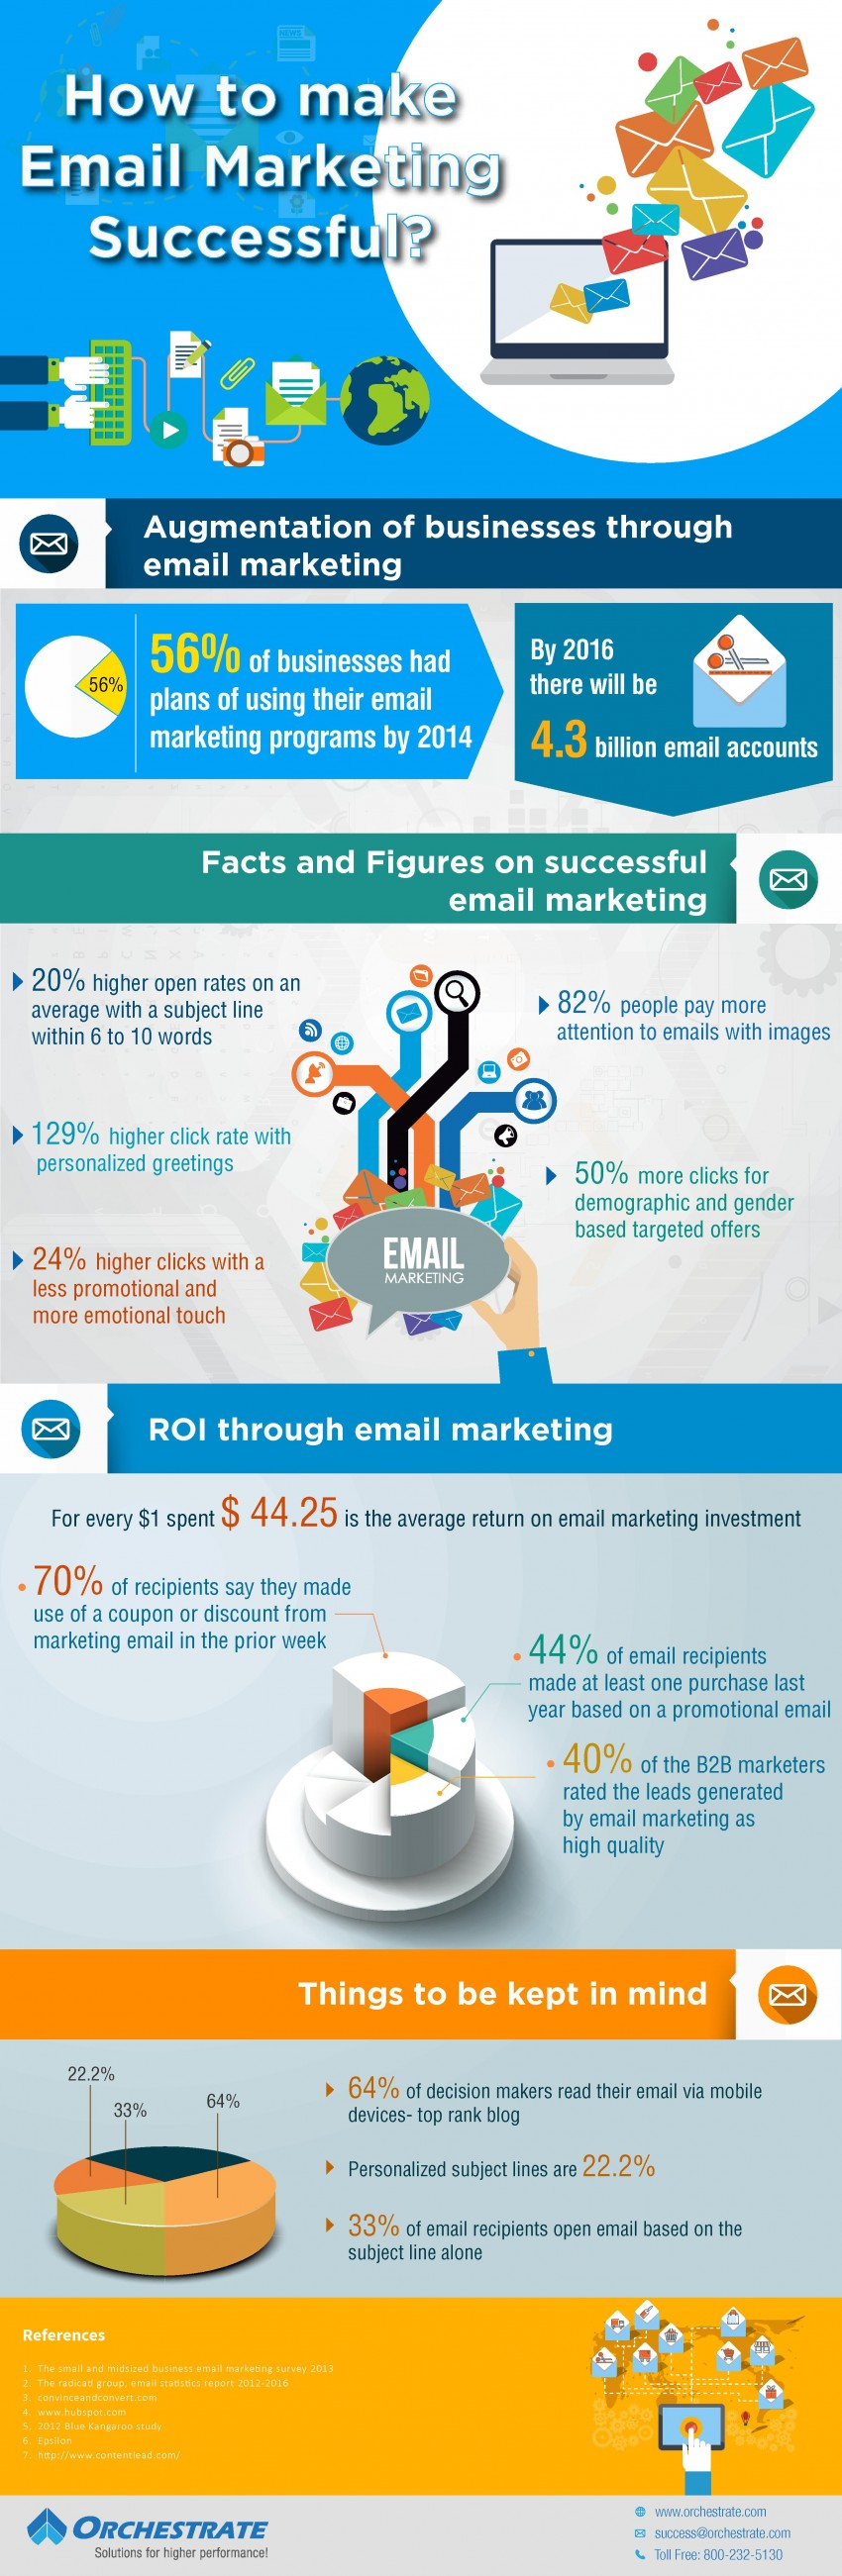 email marketing campaign essentials